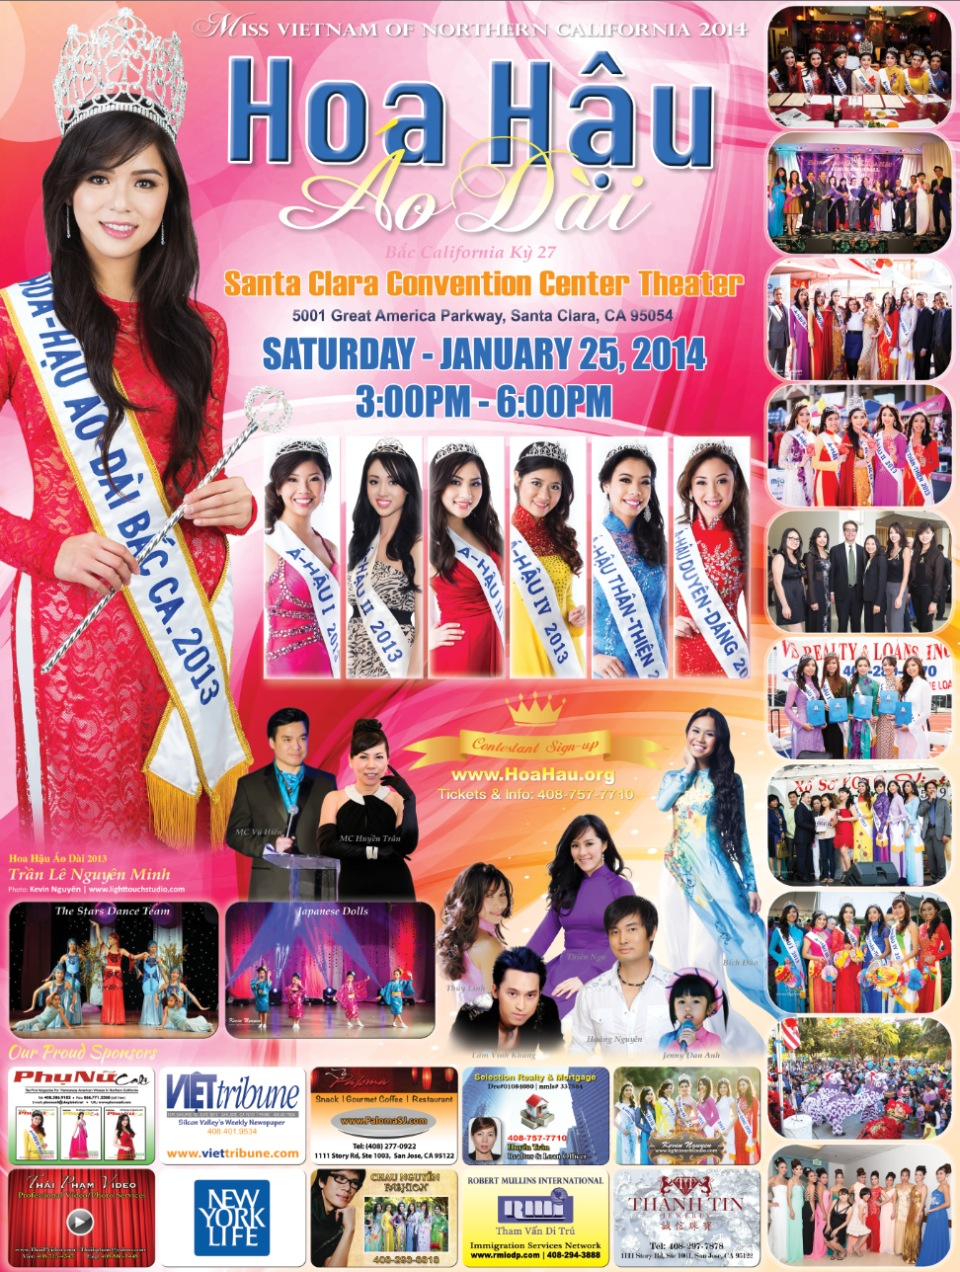 Hoa Hau Ao Dai Bac Cali Miss Vietnam of Northern California 2014 Poster